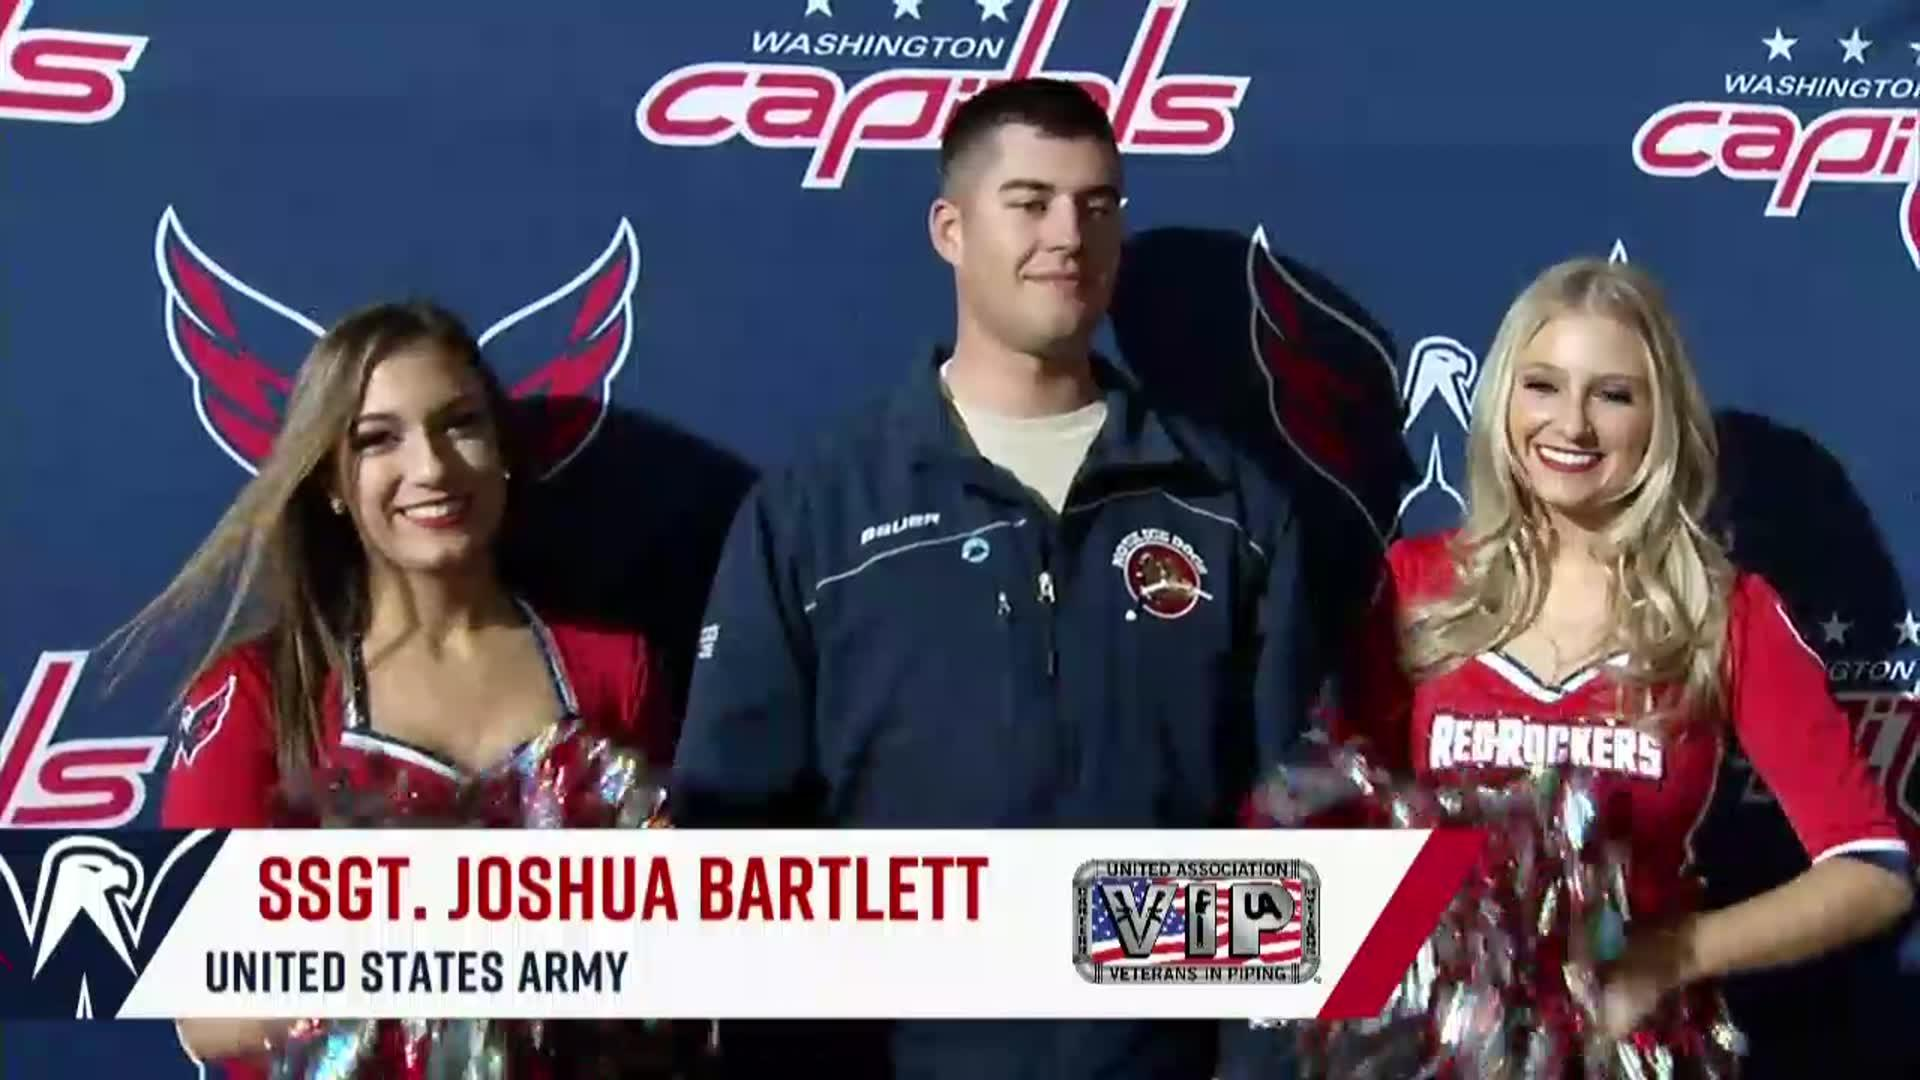 #CapsSens Salute to the Troops 11/22/17